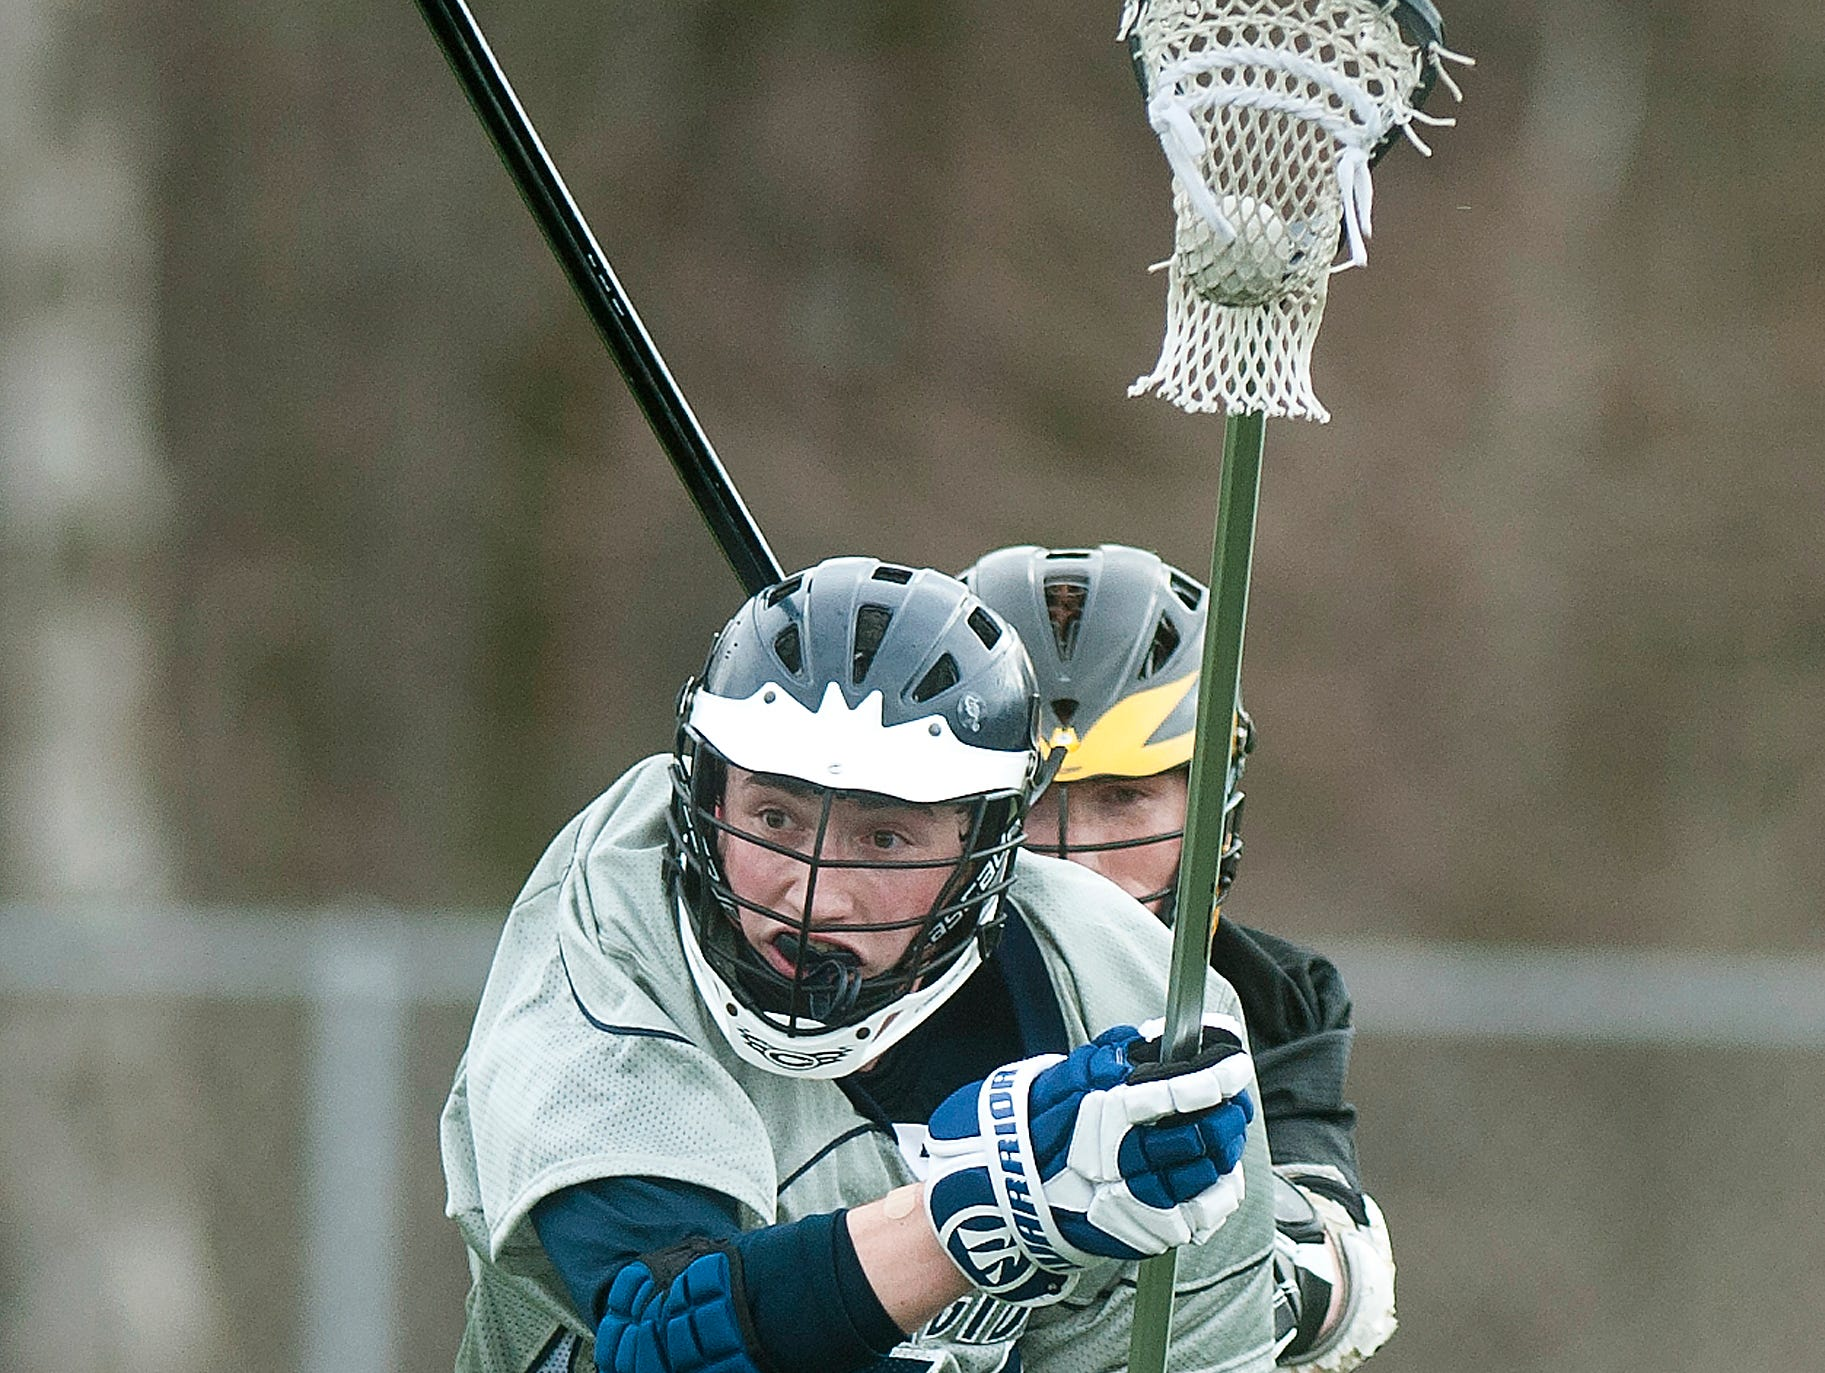 Burlington sophomore defenseman Alex Cate tries to carry the ball past a Harwood defender during Friday's game at Buck Hard Field.